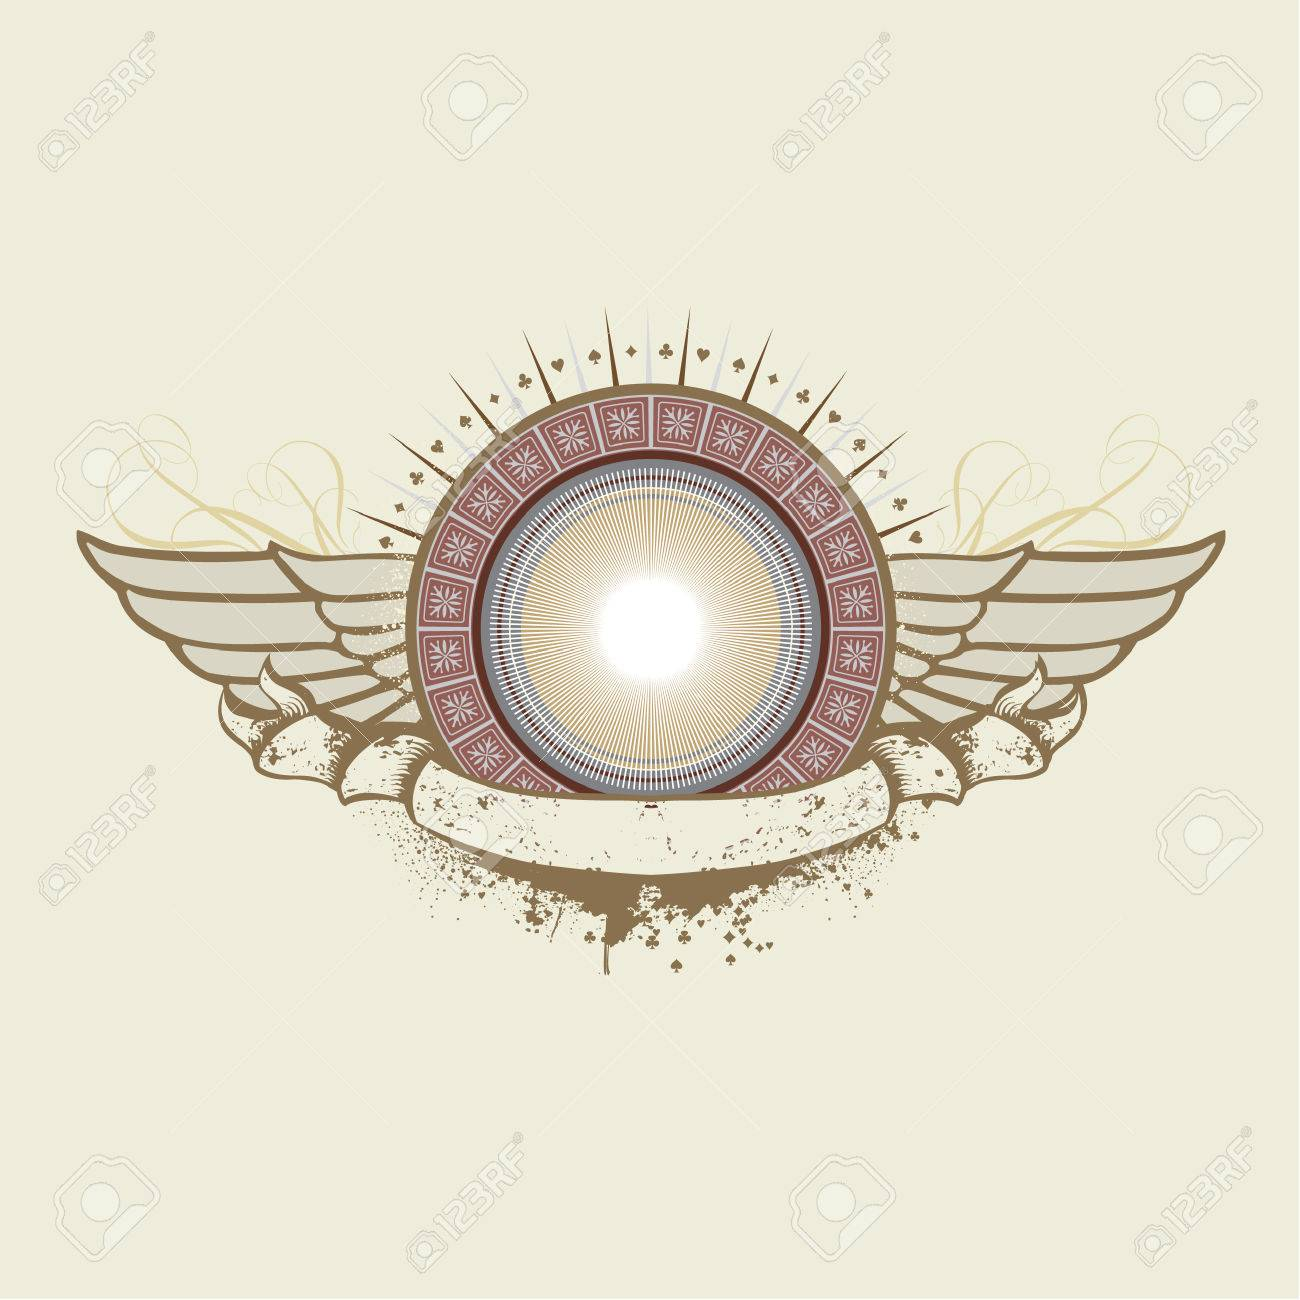 An heraldic shield or badge with wings   ,   blank so you can add your own images. Vector illustration. Stock Vector - 2072503